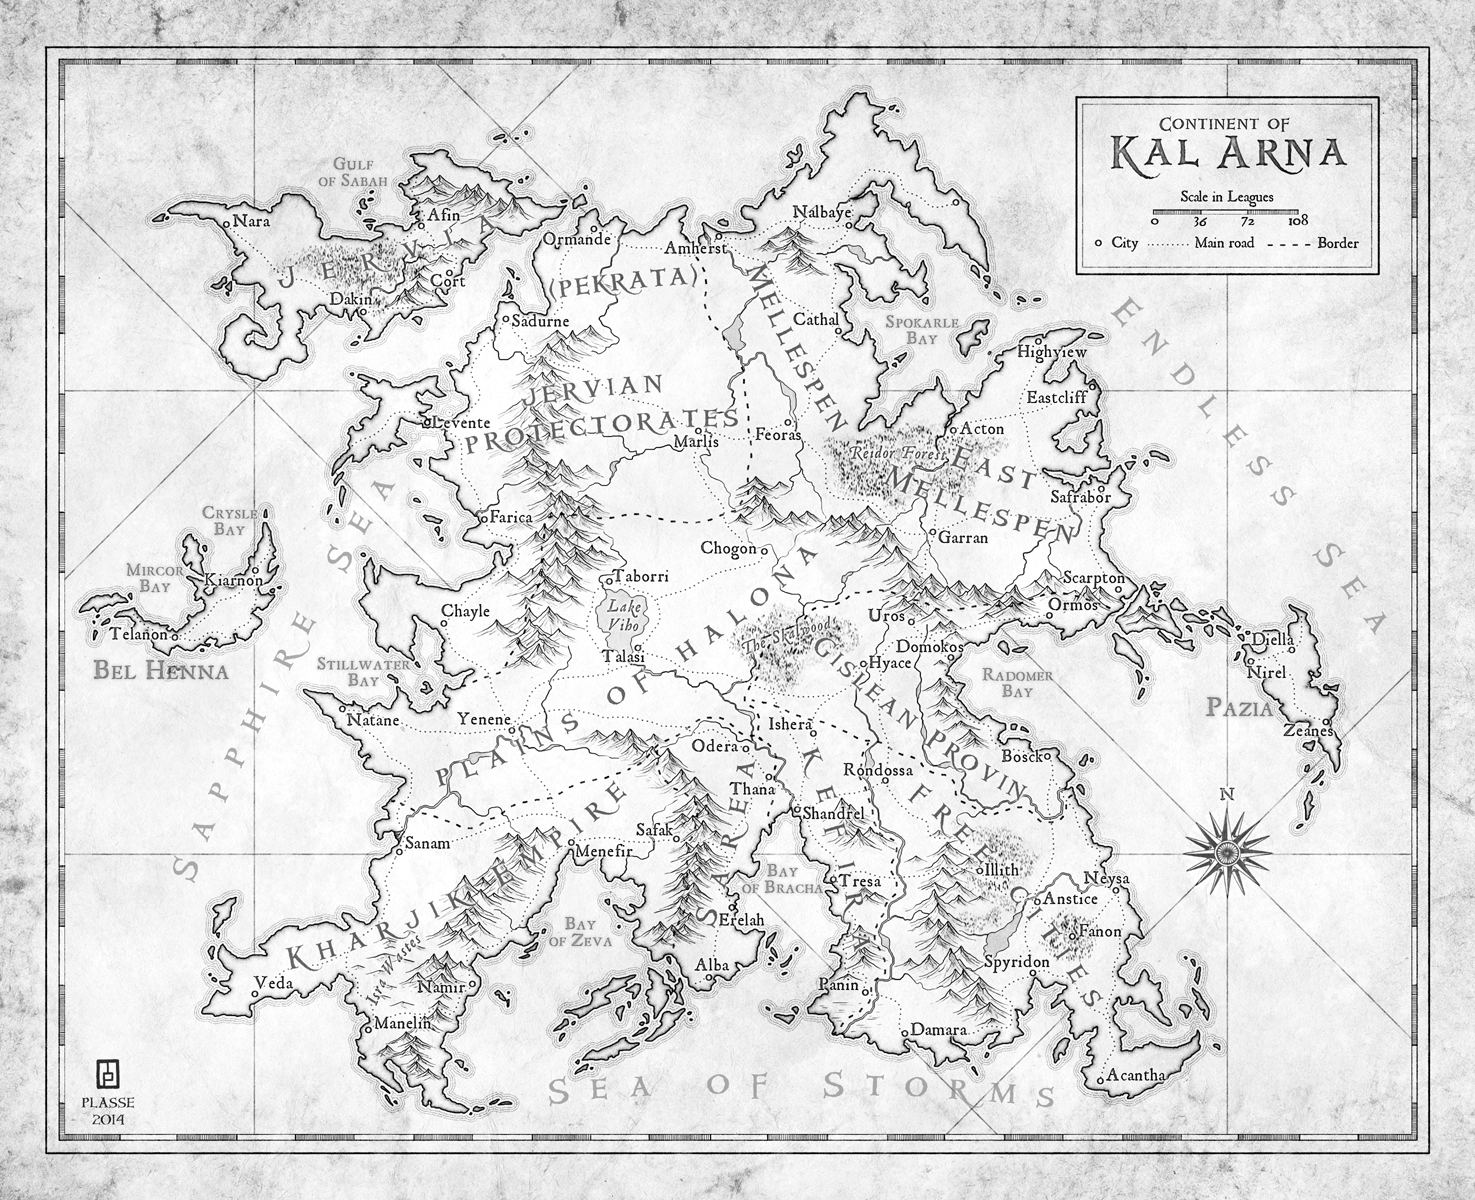 Kal Arna  - commission for writer Matt Karlov